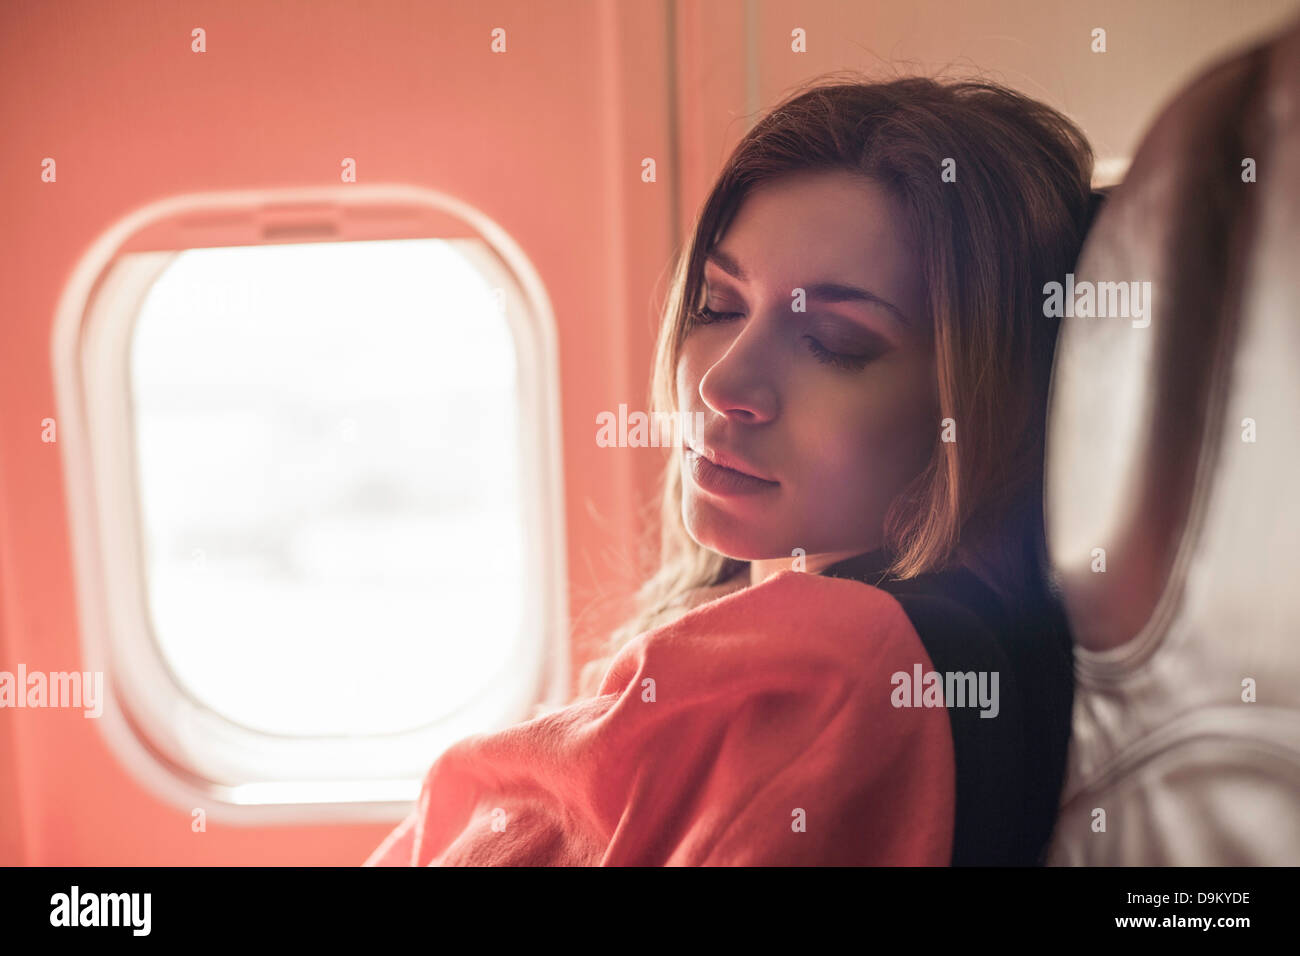 Female passenger asleep under blanket on aeroplane - Stock Image